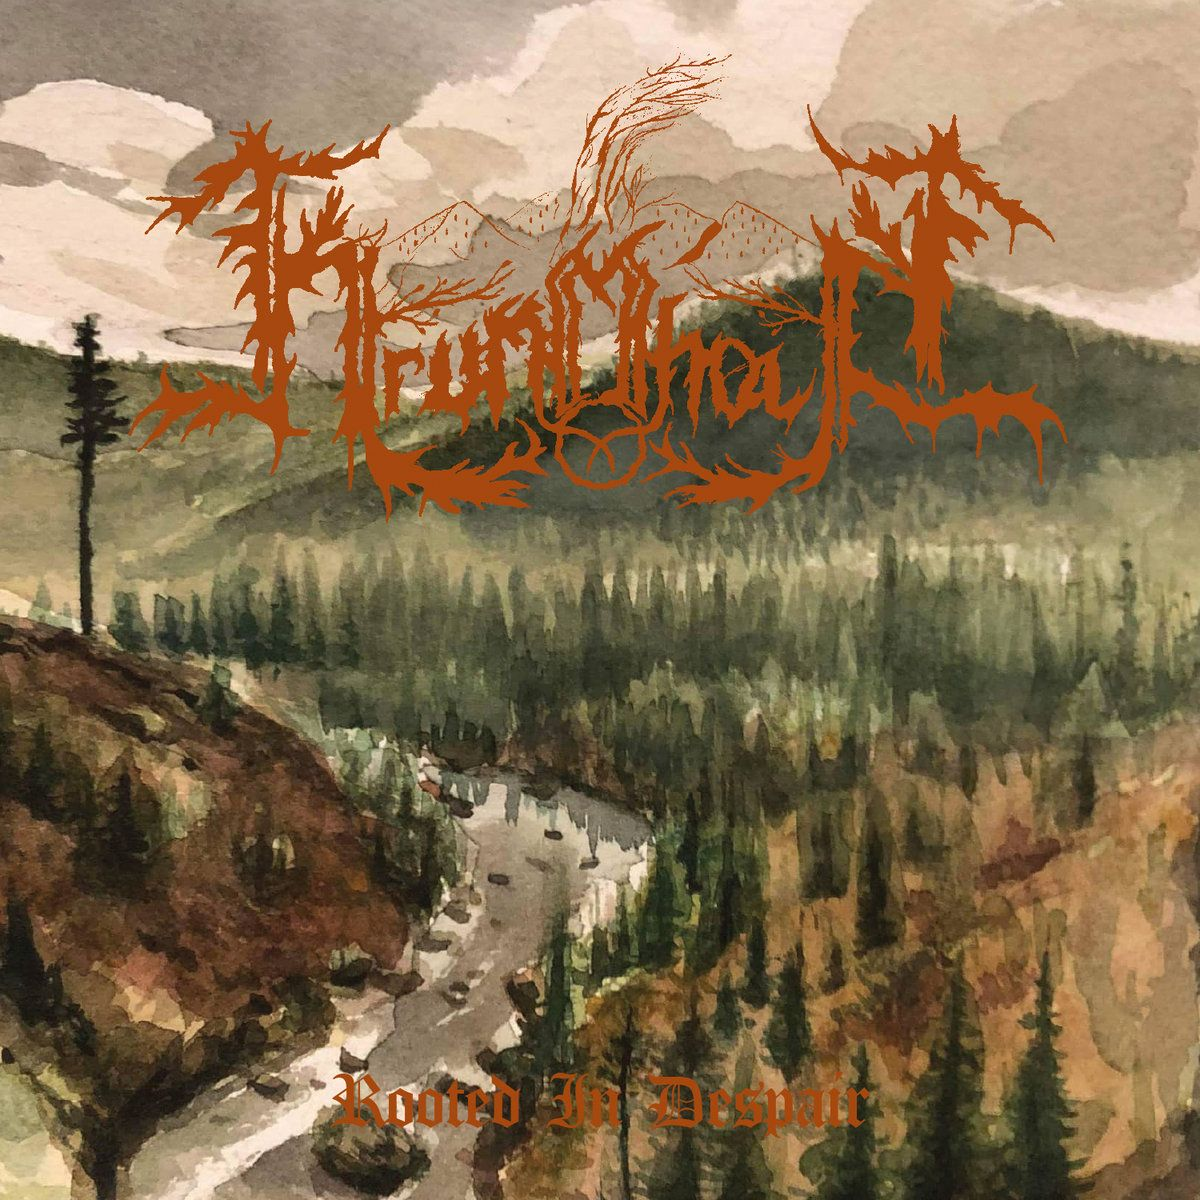 Review for Krummholz - Rooted in Despair